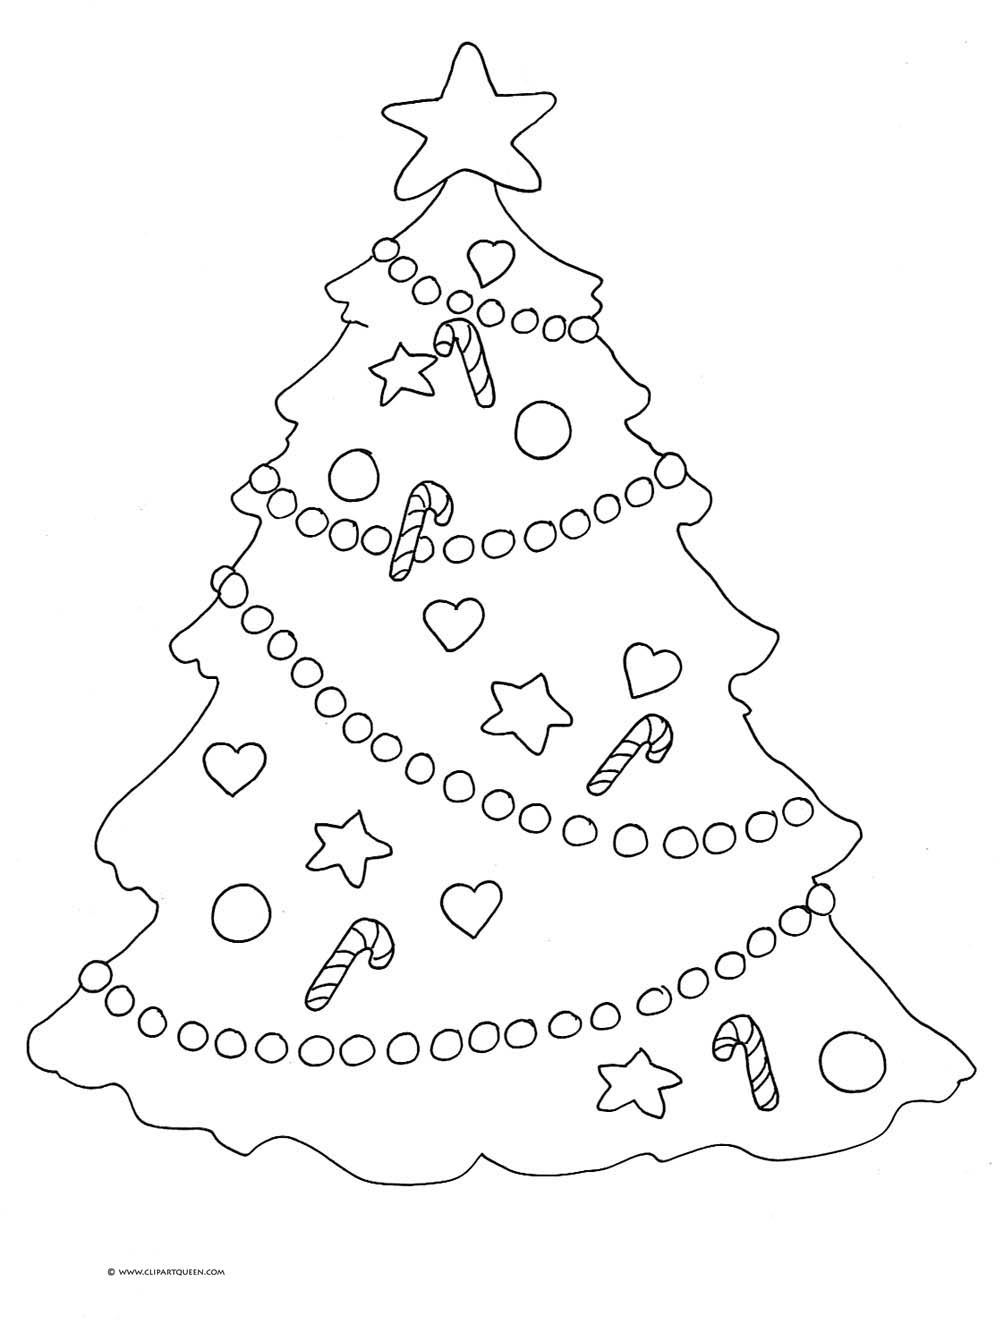 coloring pages of christmas trees coloring pages of christmas trees coloring home trees pages of coloring christmas